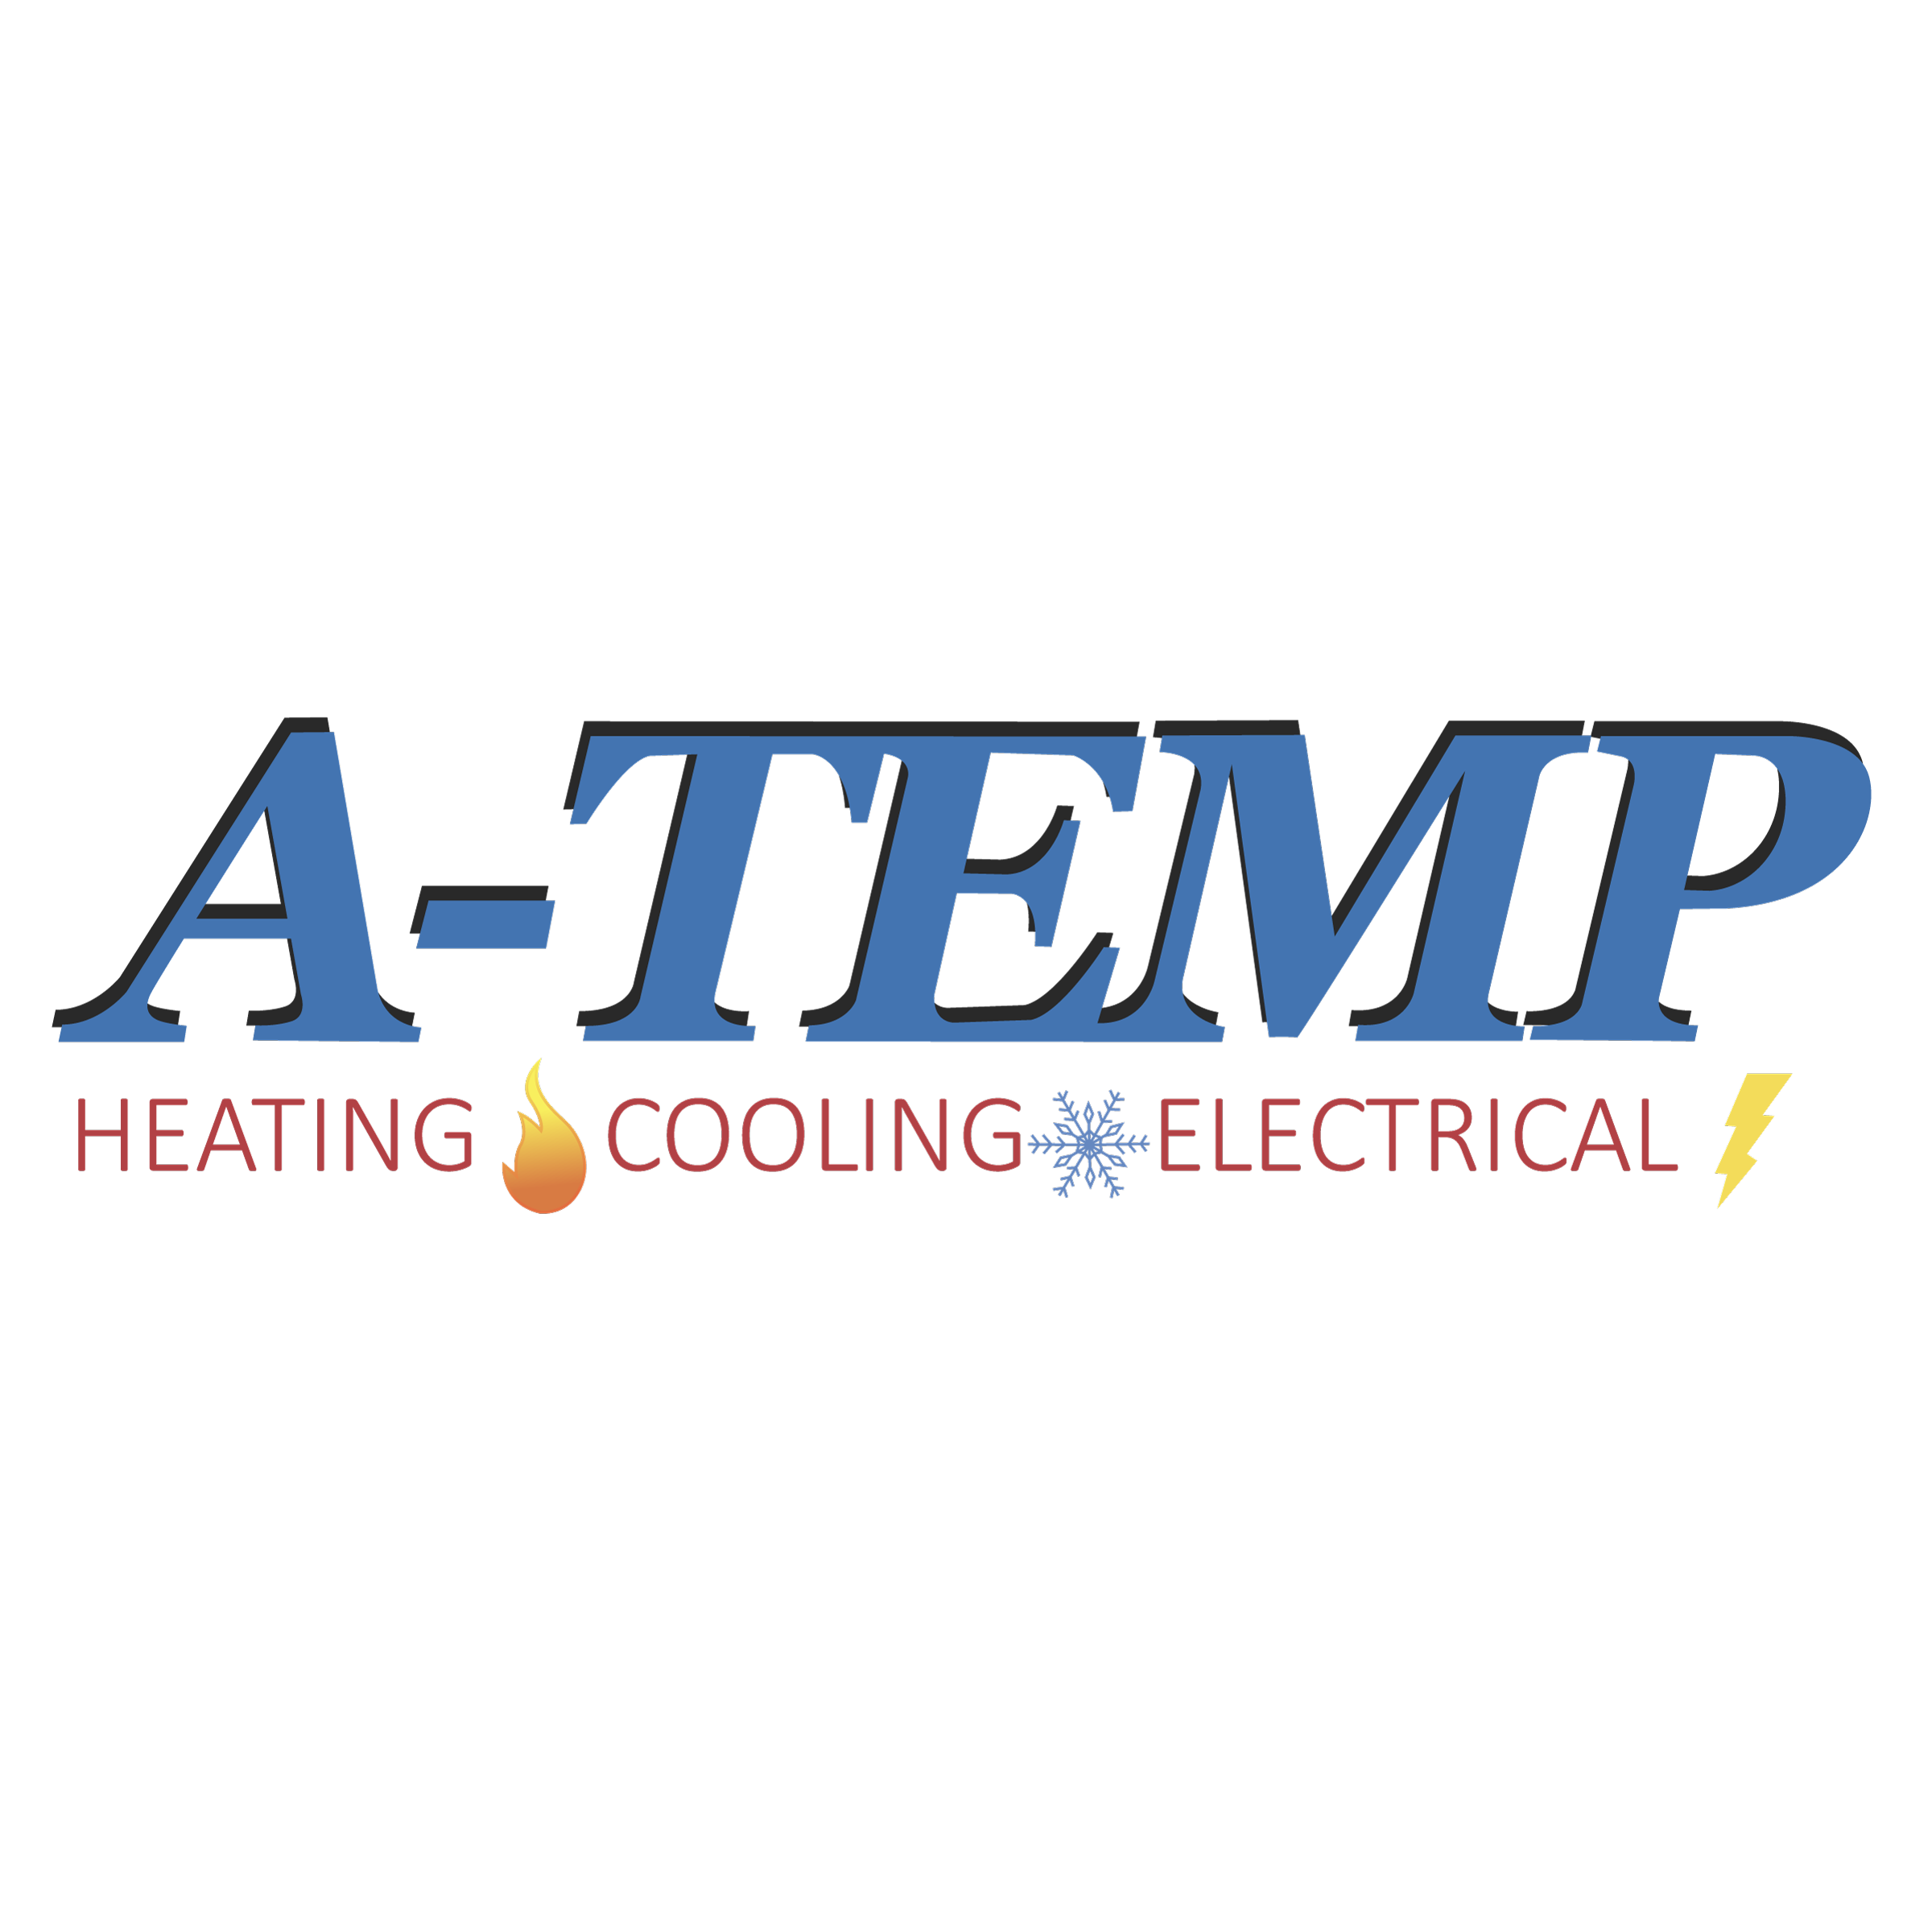 A-TEMP Heating, Cooling, & Electrical